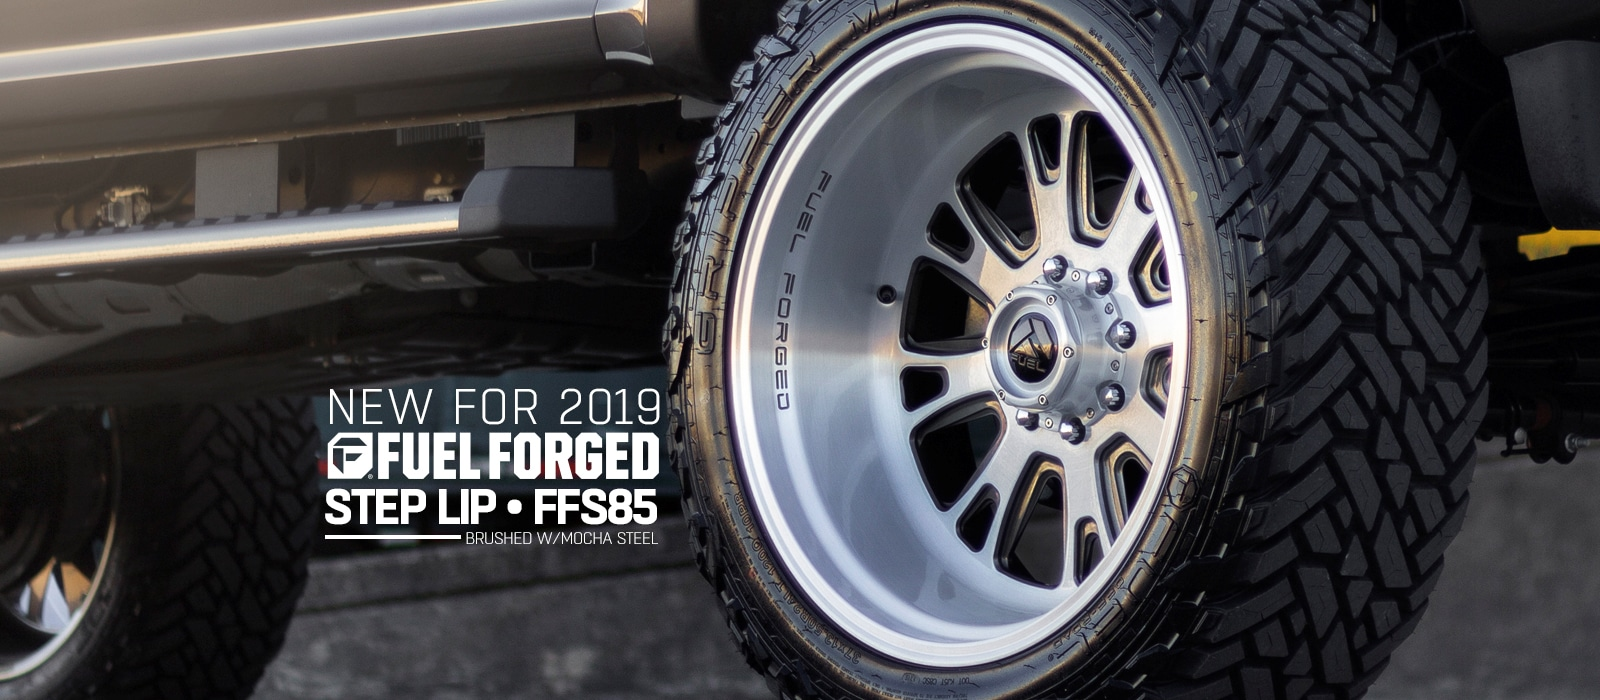 fuel-forged-ffs85-poster